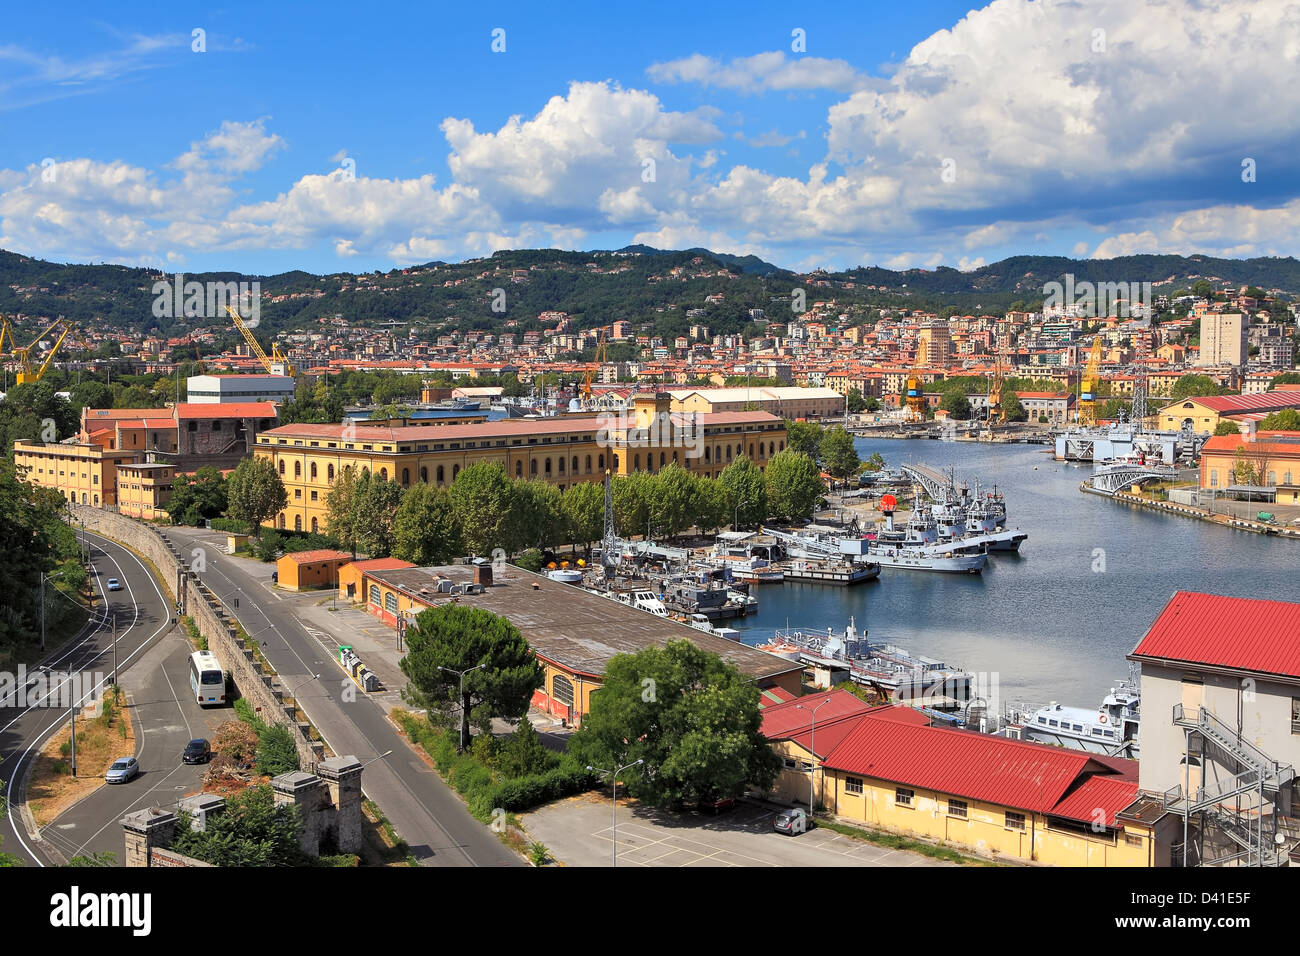 View on harbor with military navy base and city of La Spezia in Liguria, Italy. - Stock Image